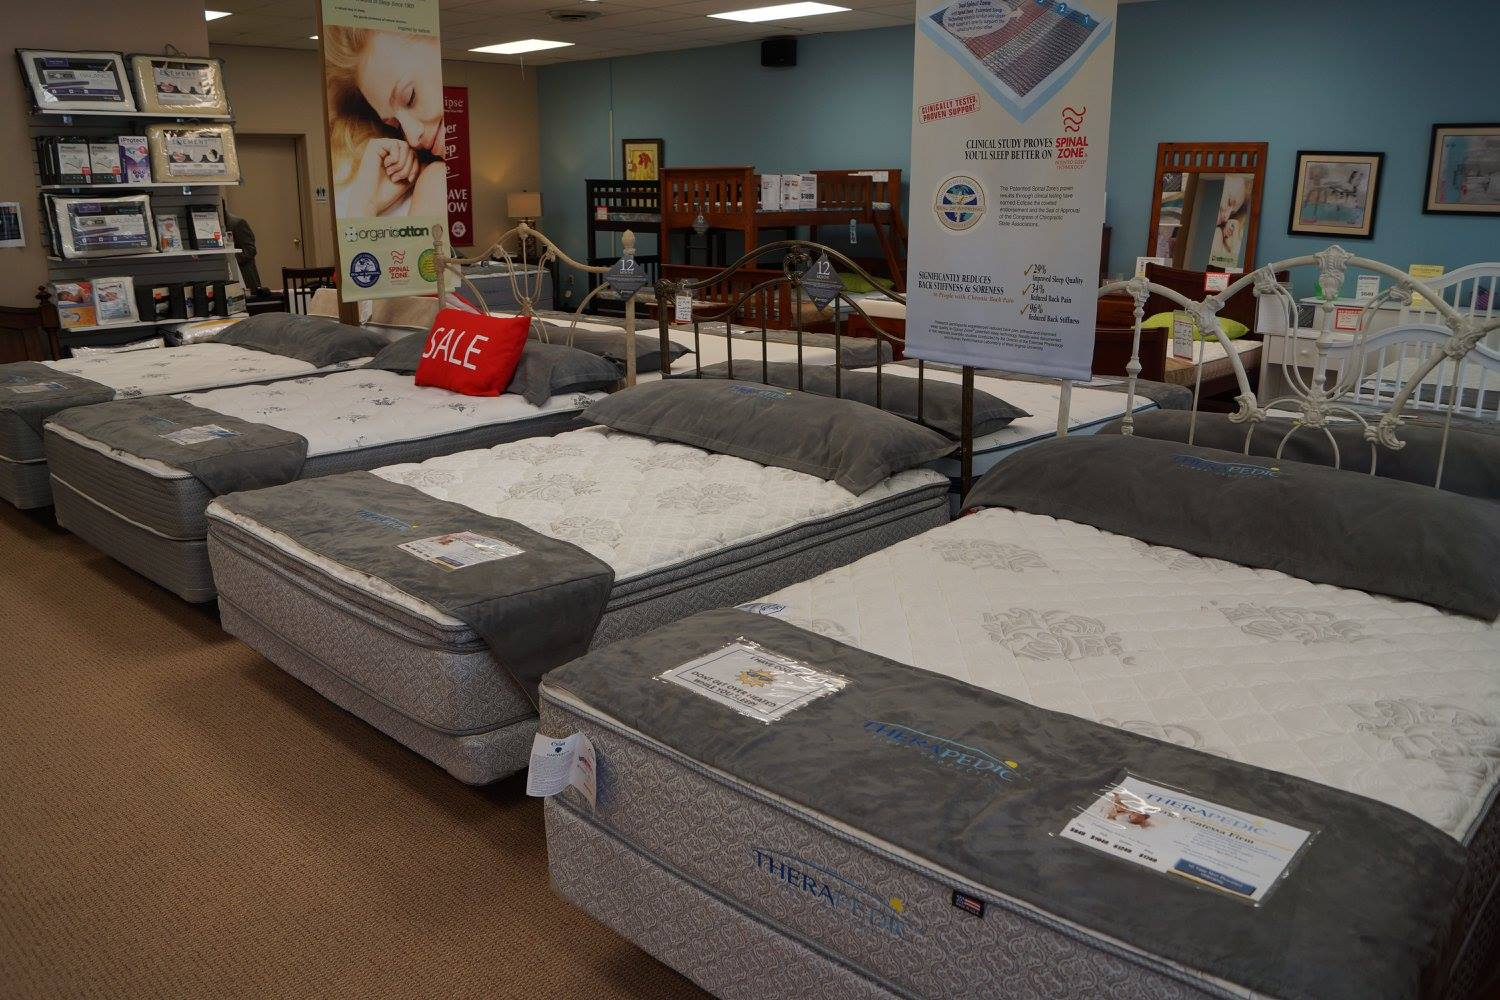 image nh salem exciting discounters mattress and full of size pricesmattress inspirations sale